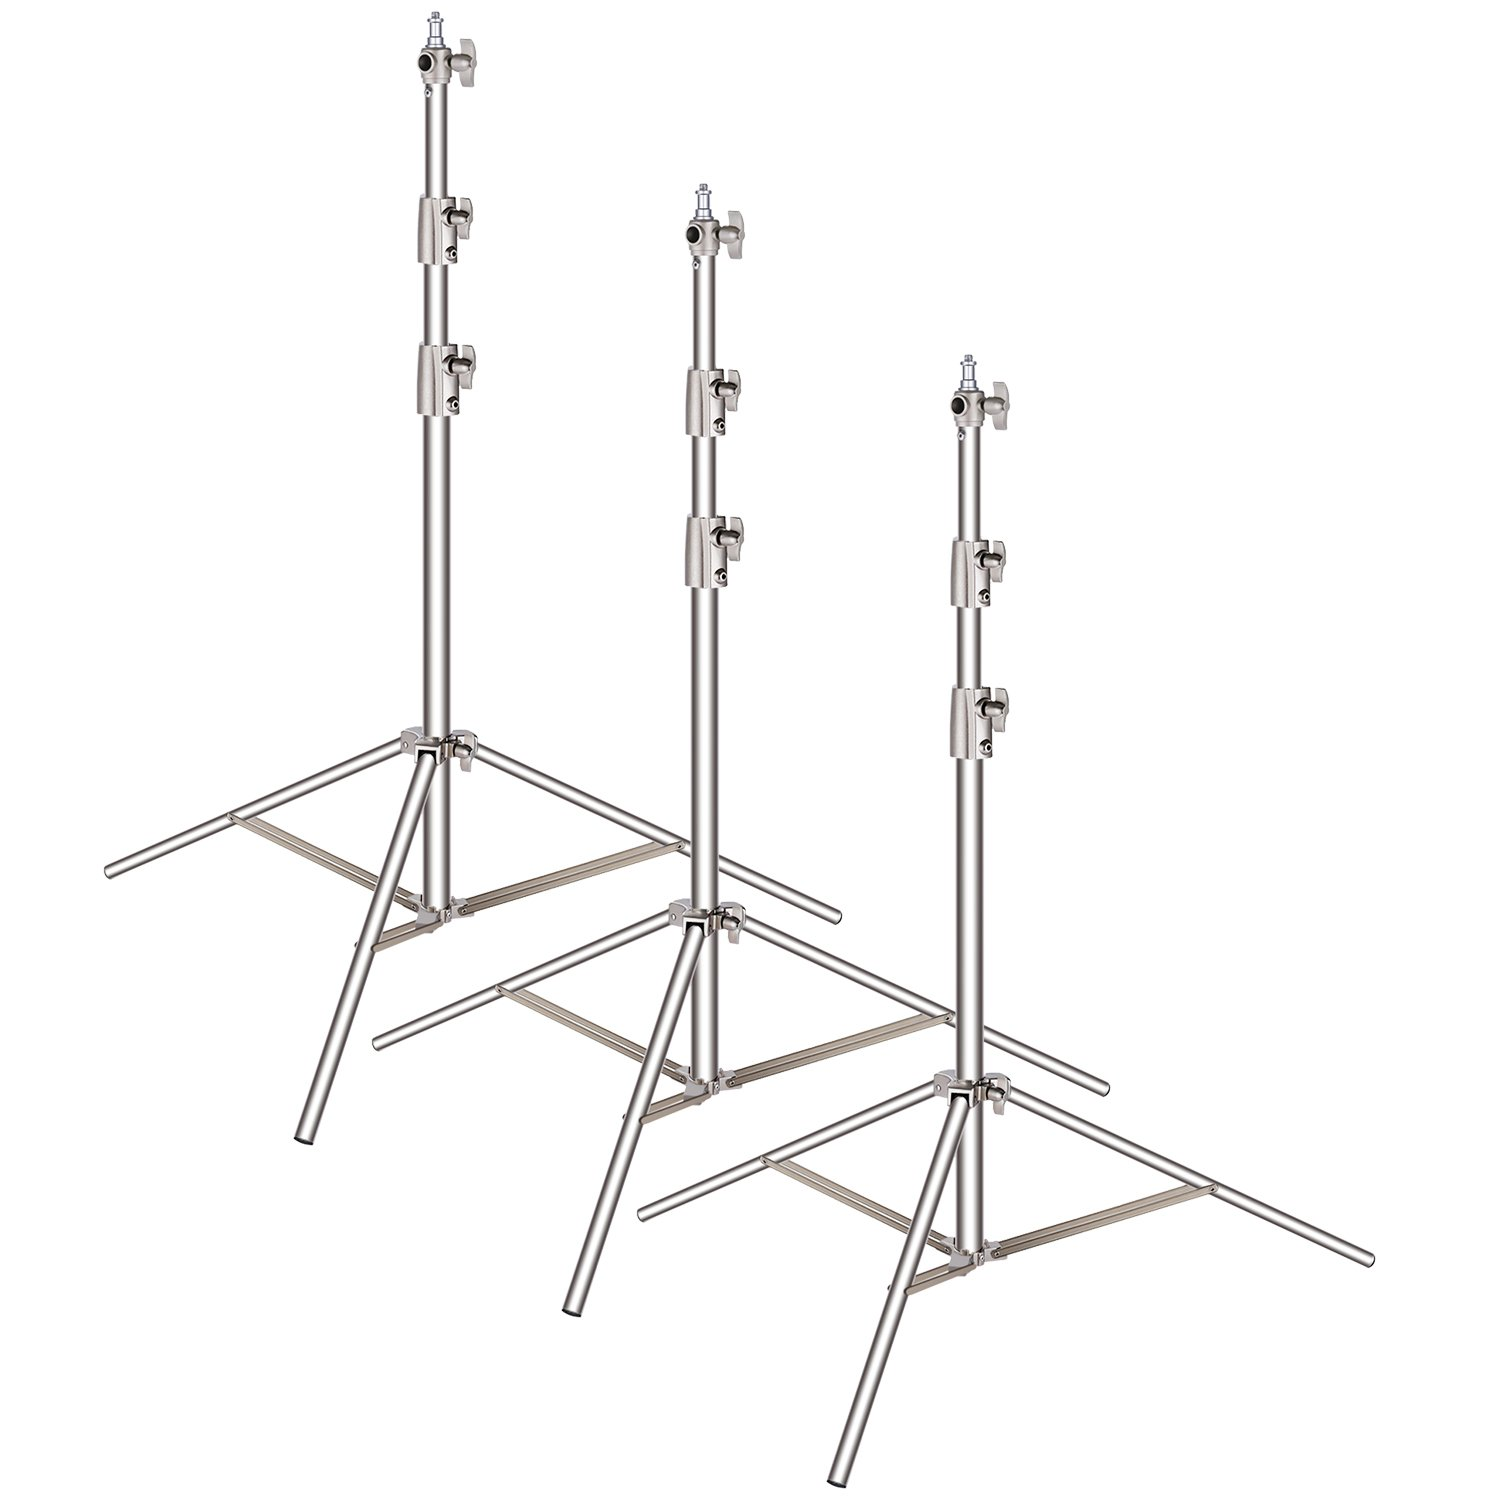 Neewer 3-pack Stainless Steel Light Stand with 1/4-inch to 3/8-inch Universal Adapter 39-102 inches/99-260 centimeters Foldable Support Stand for Studio Softbox,Umbrella,Strobe Light,Reflector,etc by Neewer